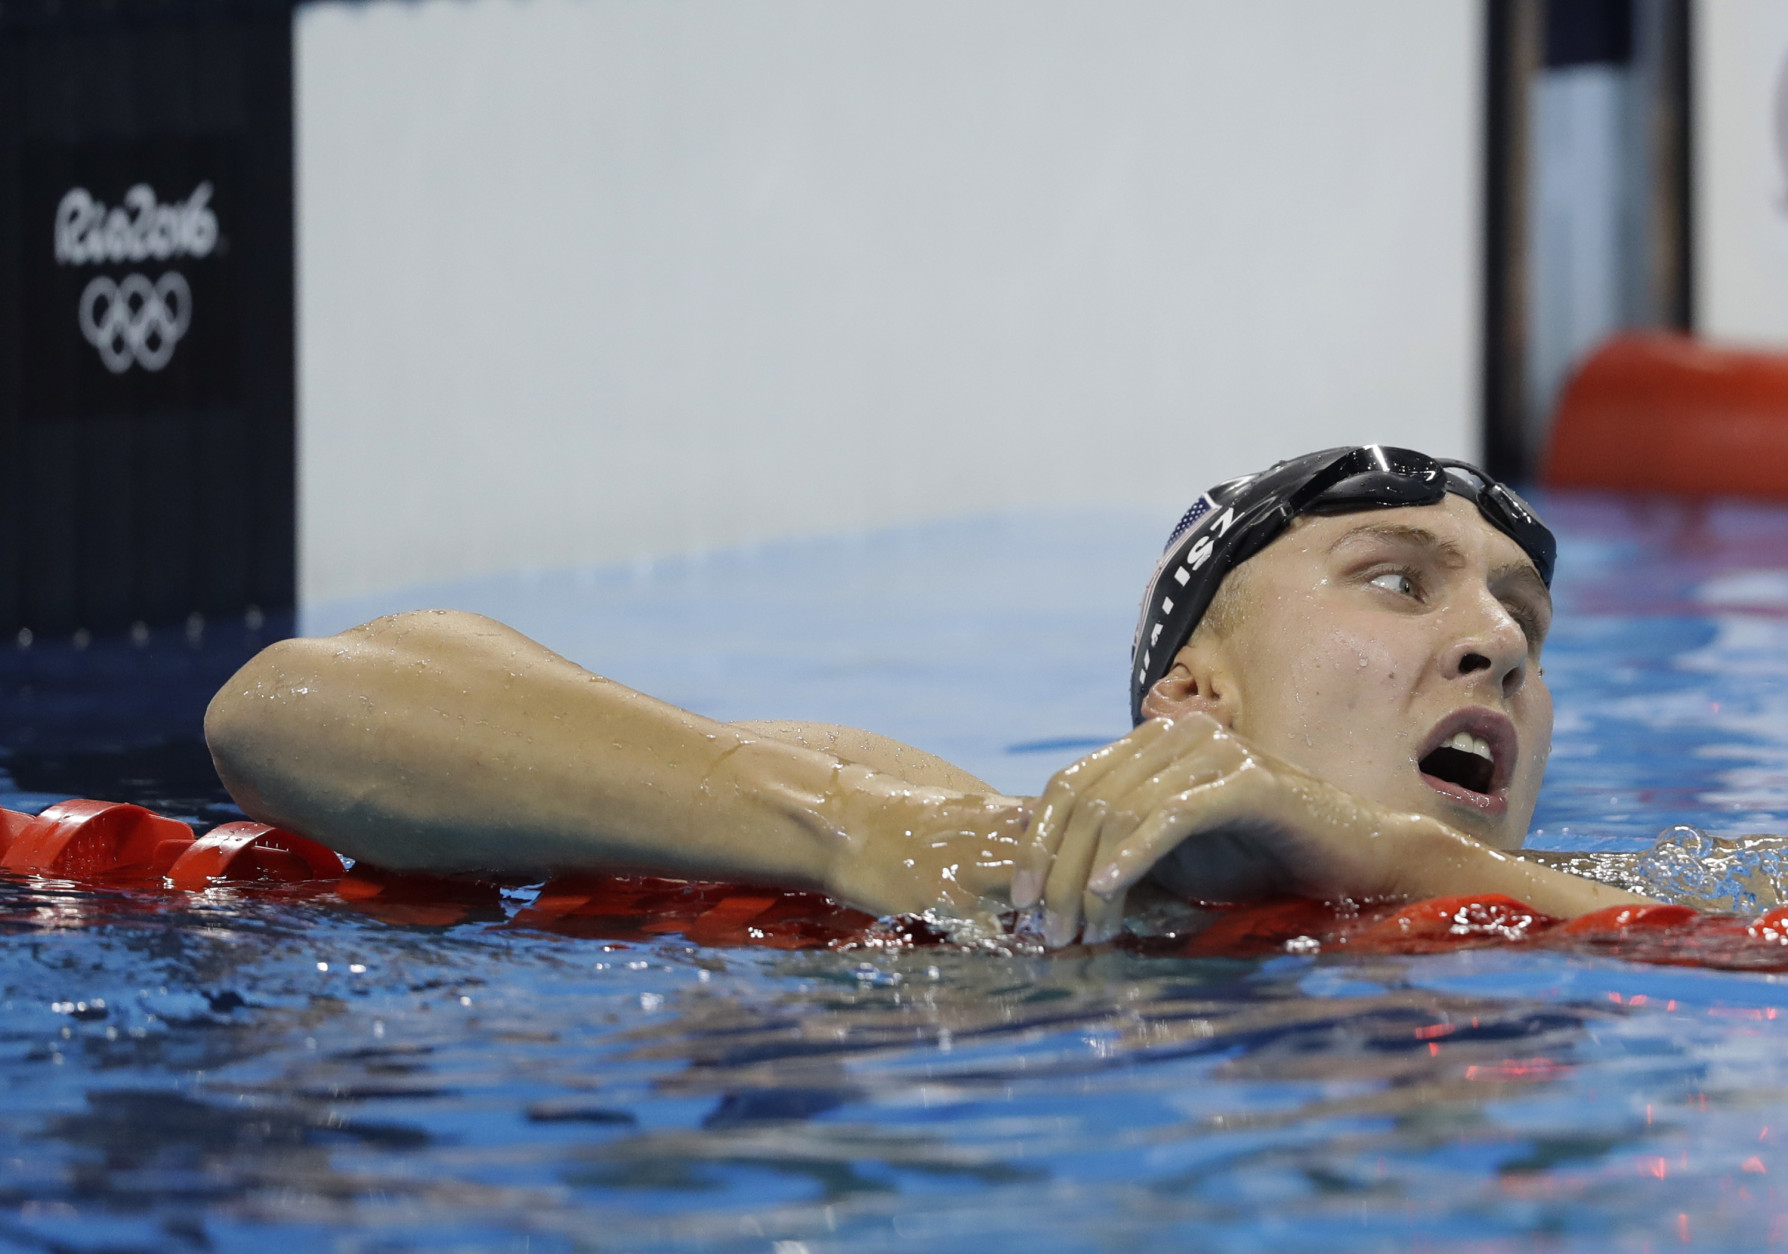 United States' silver medal winner Chase Kalisz catches his breath after the men's 400-meter individual medley final during the swimming competitions at the 2016 Summer Olympics, Saturday, Aug. 6, 2016, in Rio de Janeiro, Brazil. (AP Photo/Michael Sohn)